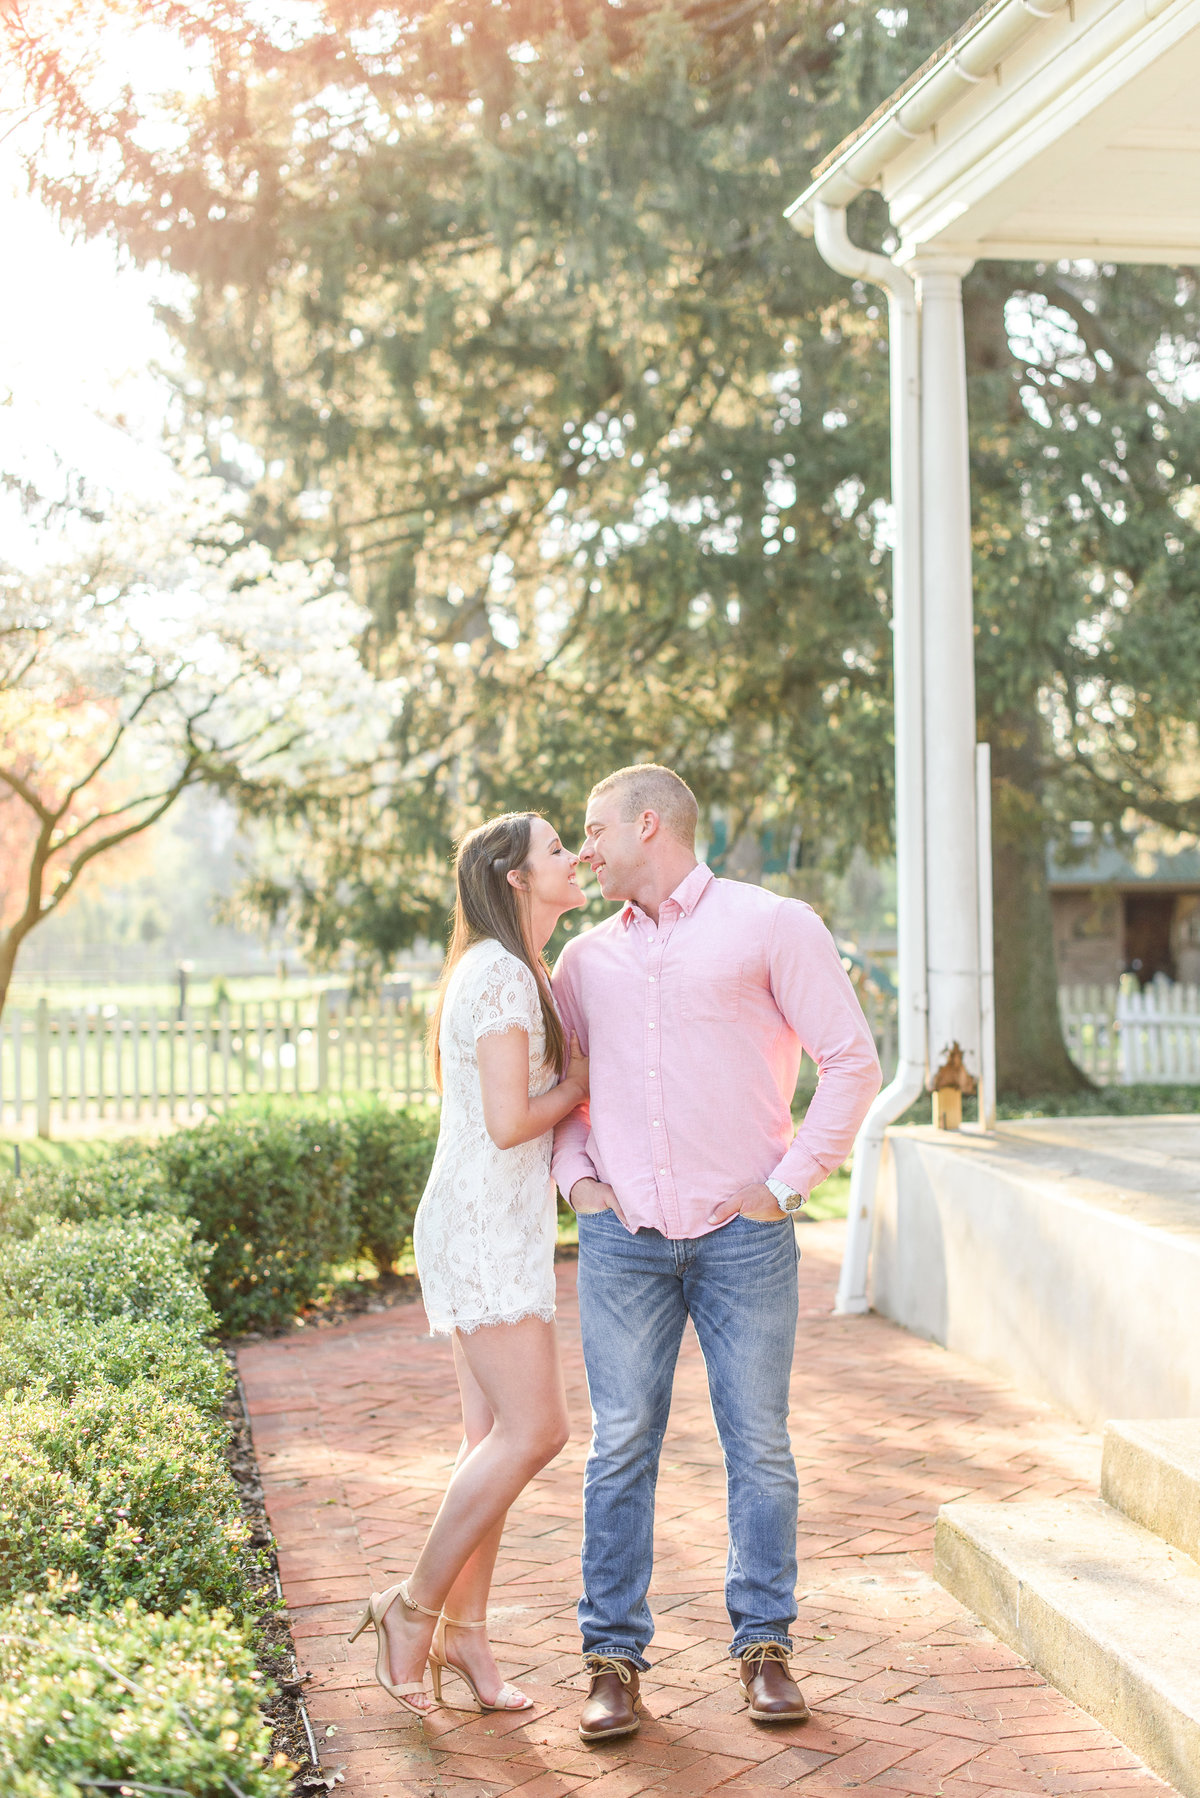 Olivia & Cody_ White Chimney's Engagement session_ Olivia Rae Photography-54